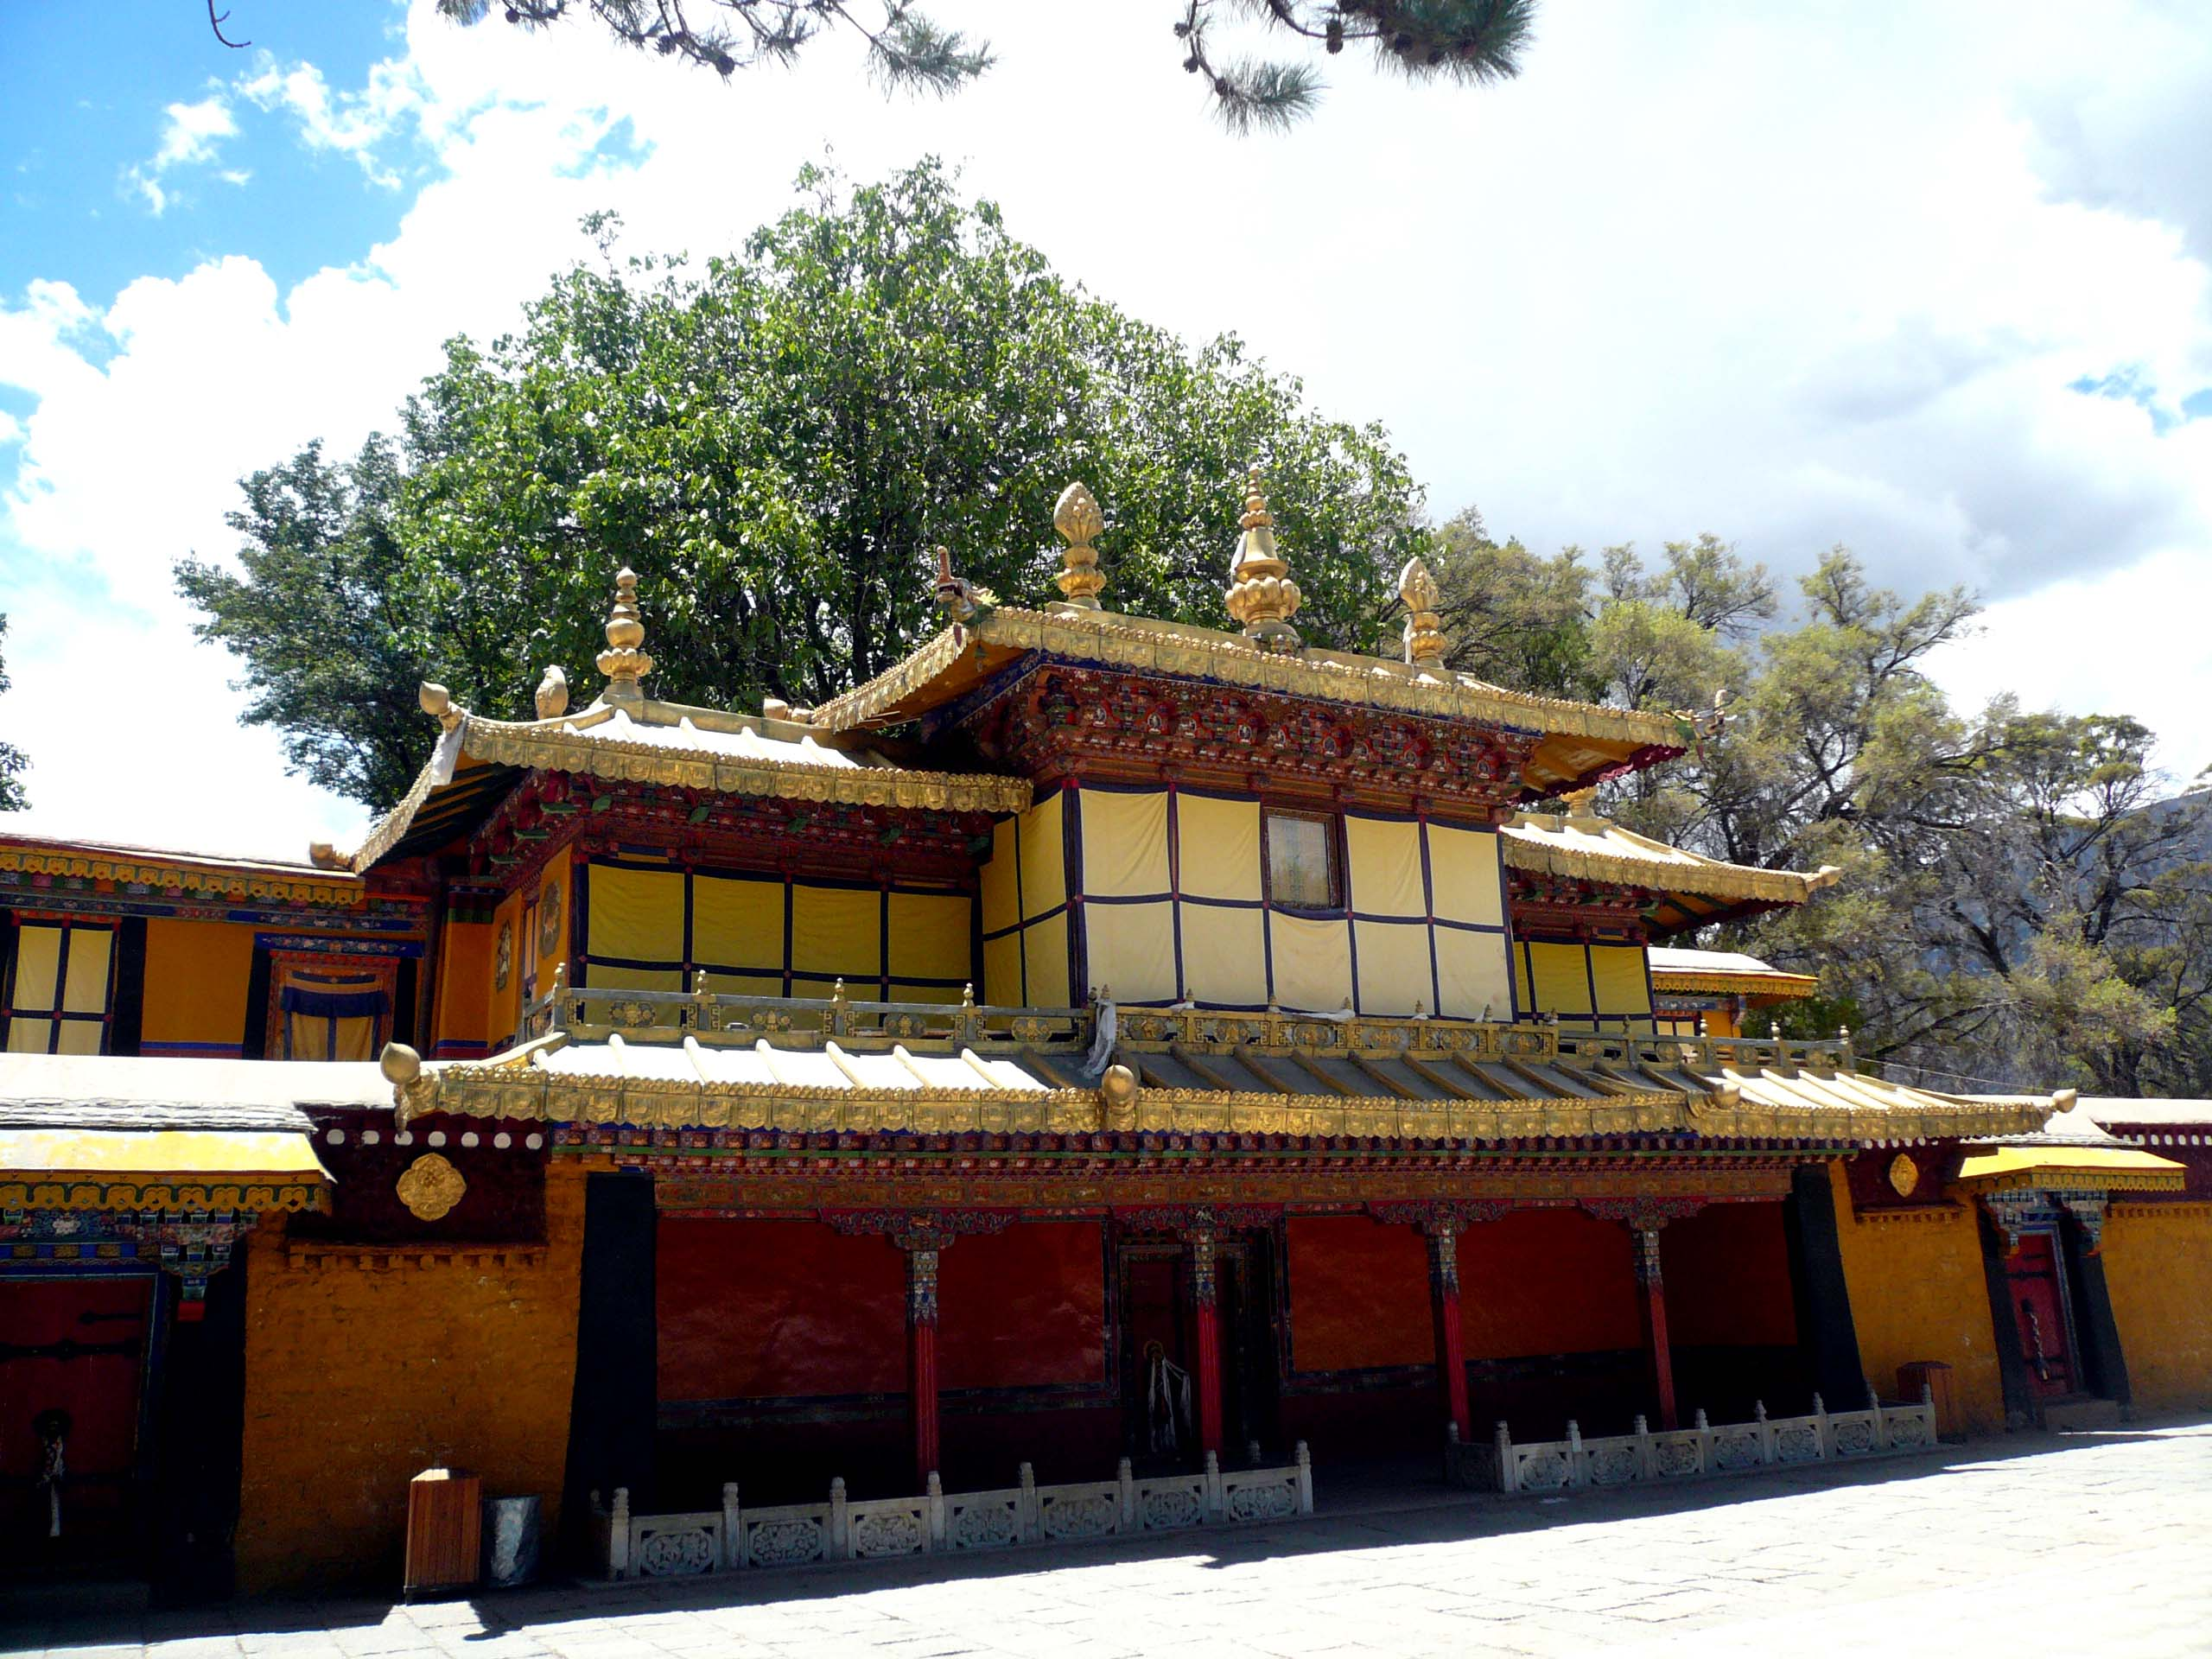 Performances used to be held at the open area infront of this building where the Dalai Lama watched from the small window above.